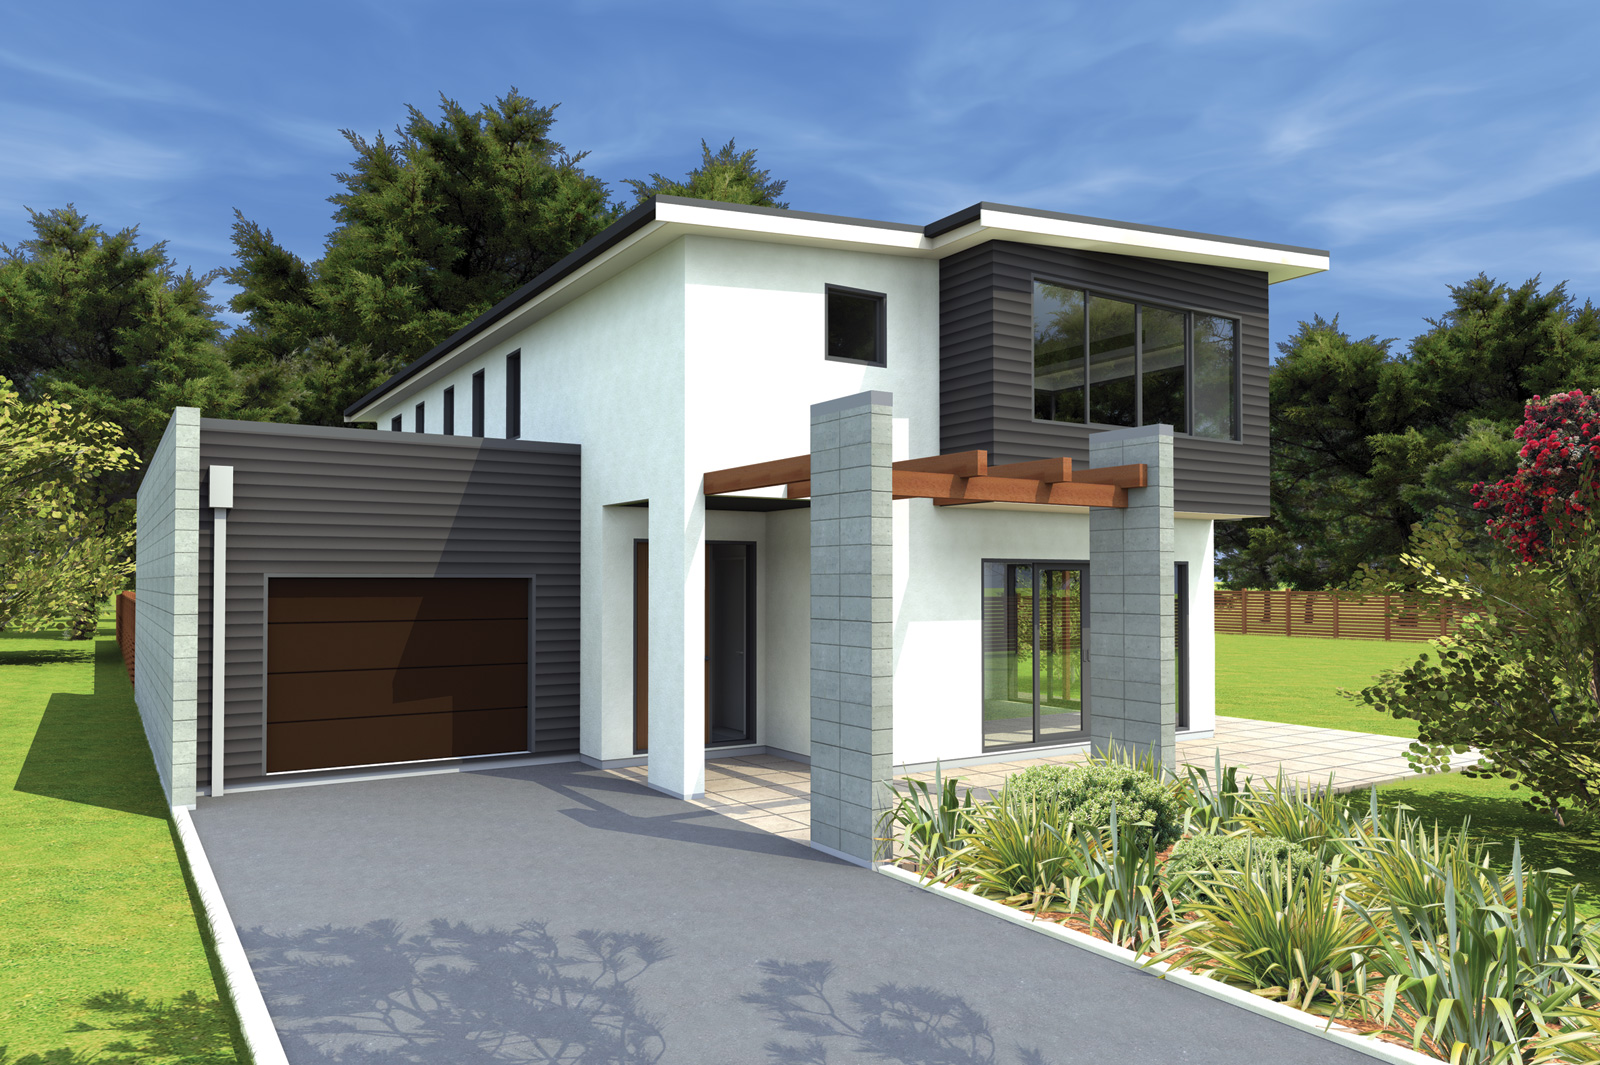 New home designs latest new modern homes designs new zealand Home design ideas photos architecture